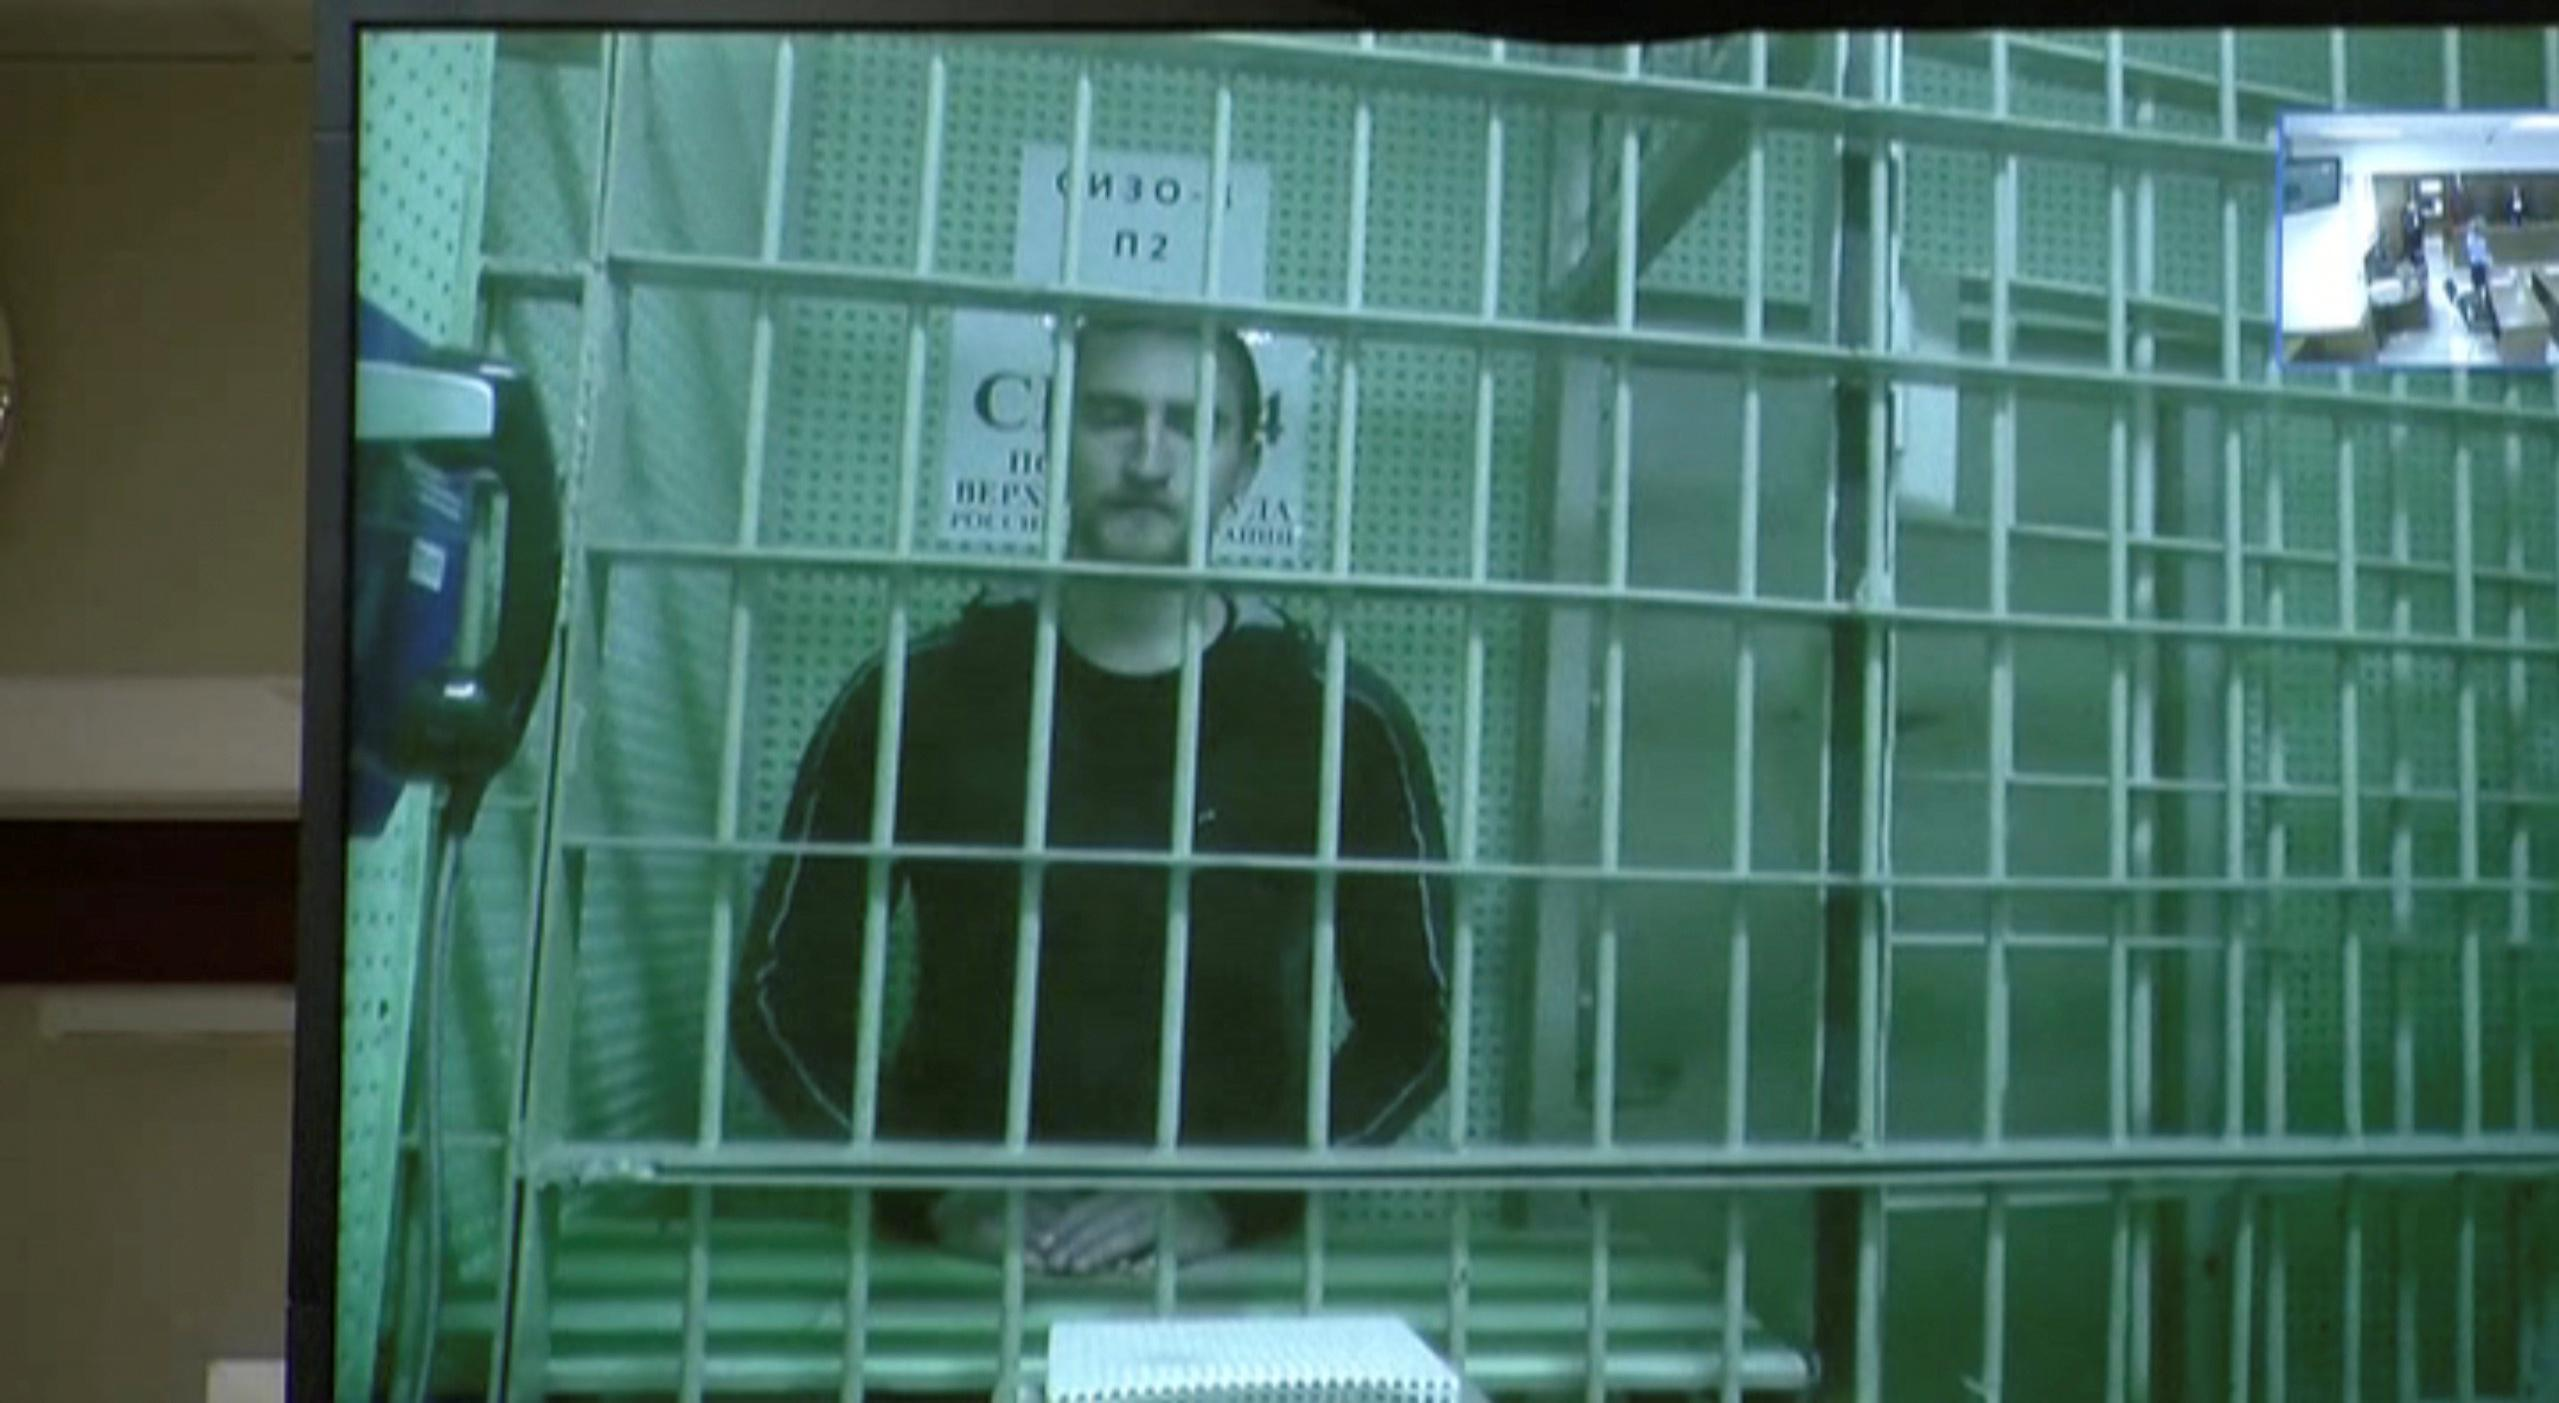 Russia, in rare volte-face, frees jailed actor after outcry